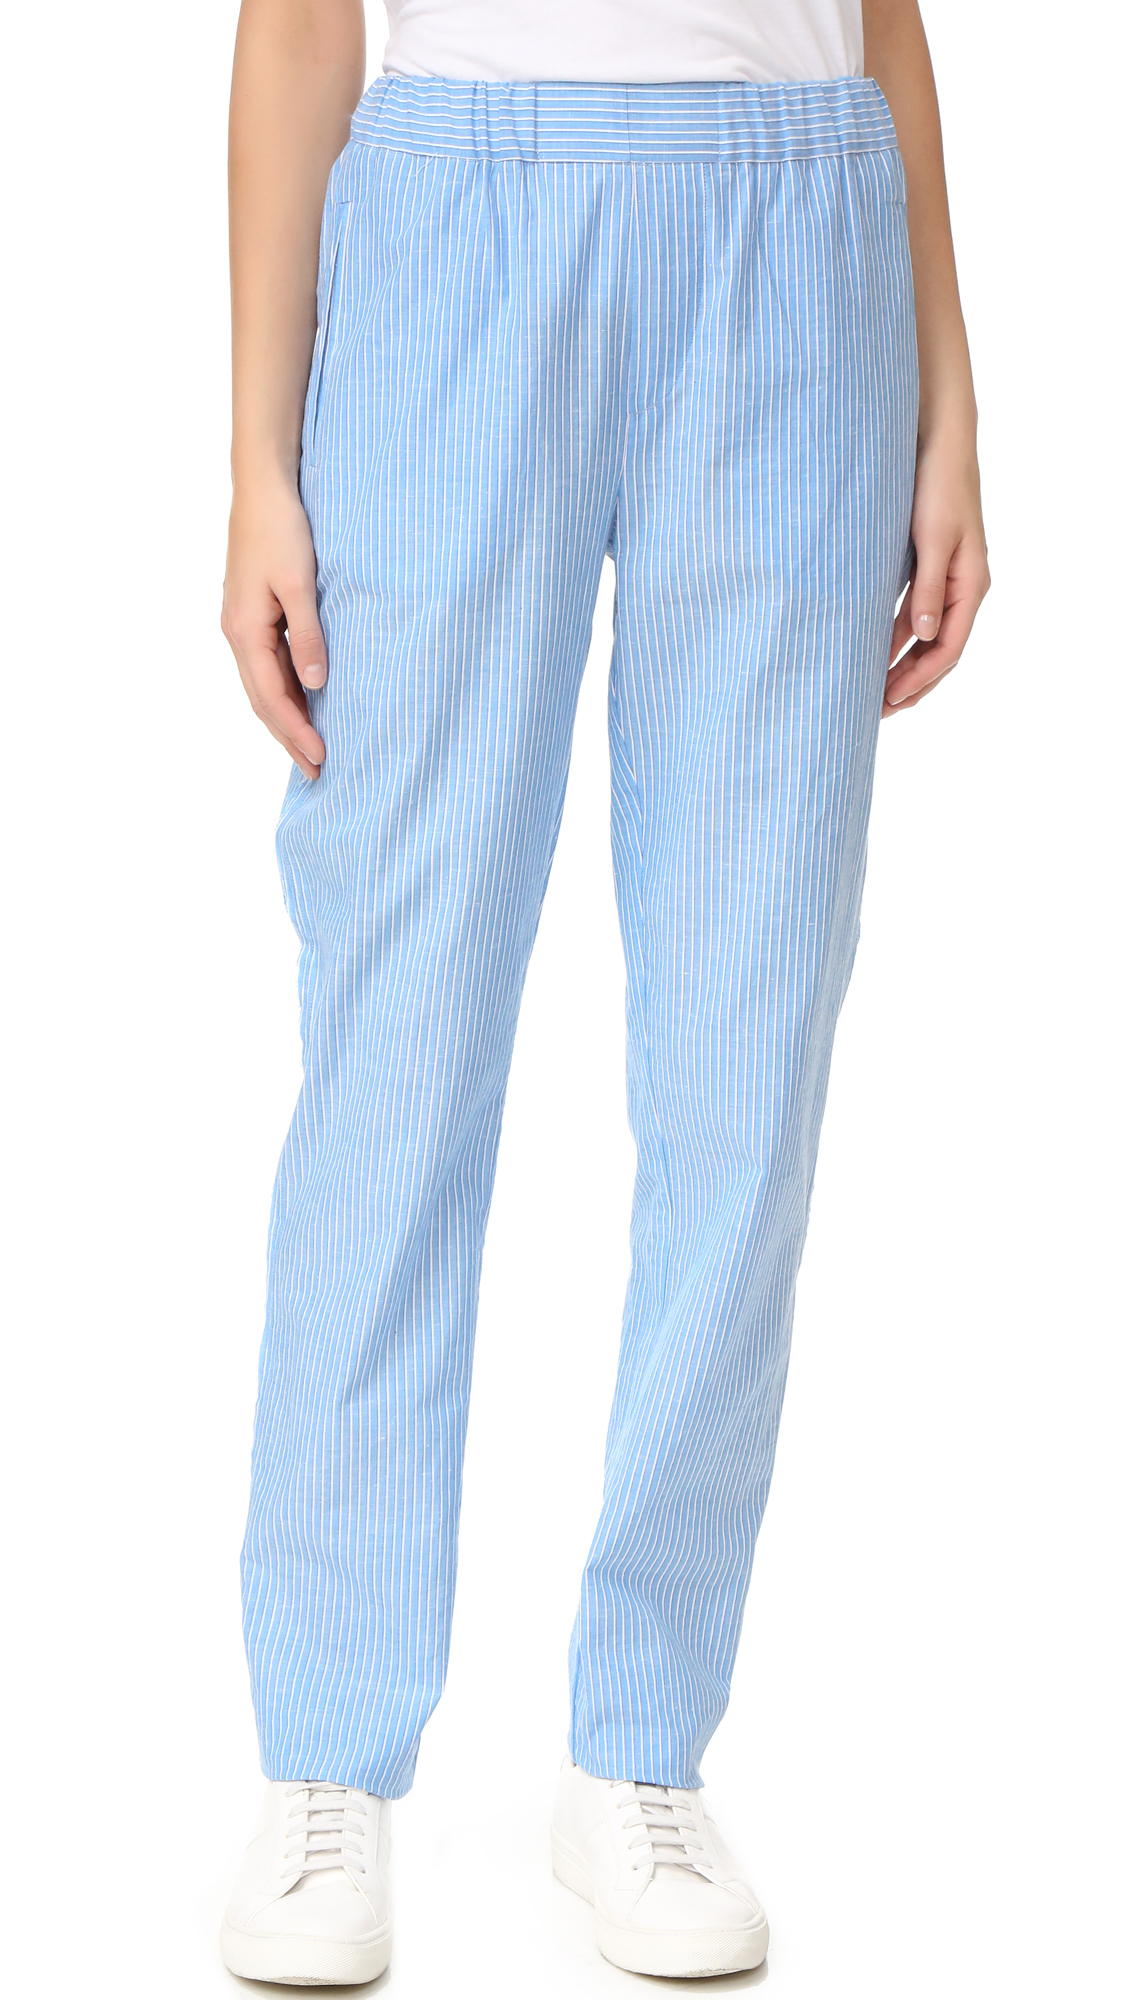 Baja East Striped Pants - Malibu Blue